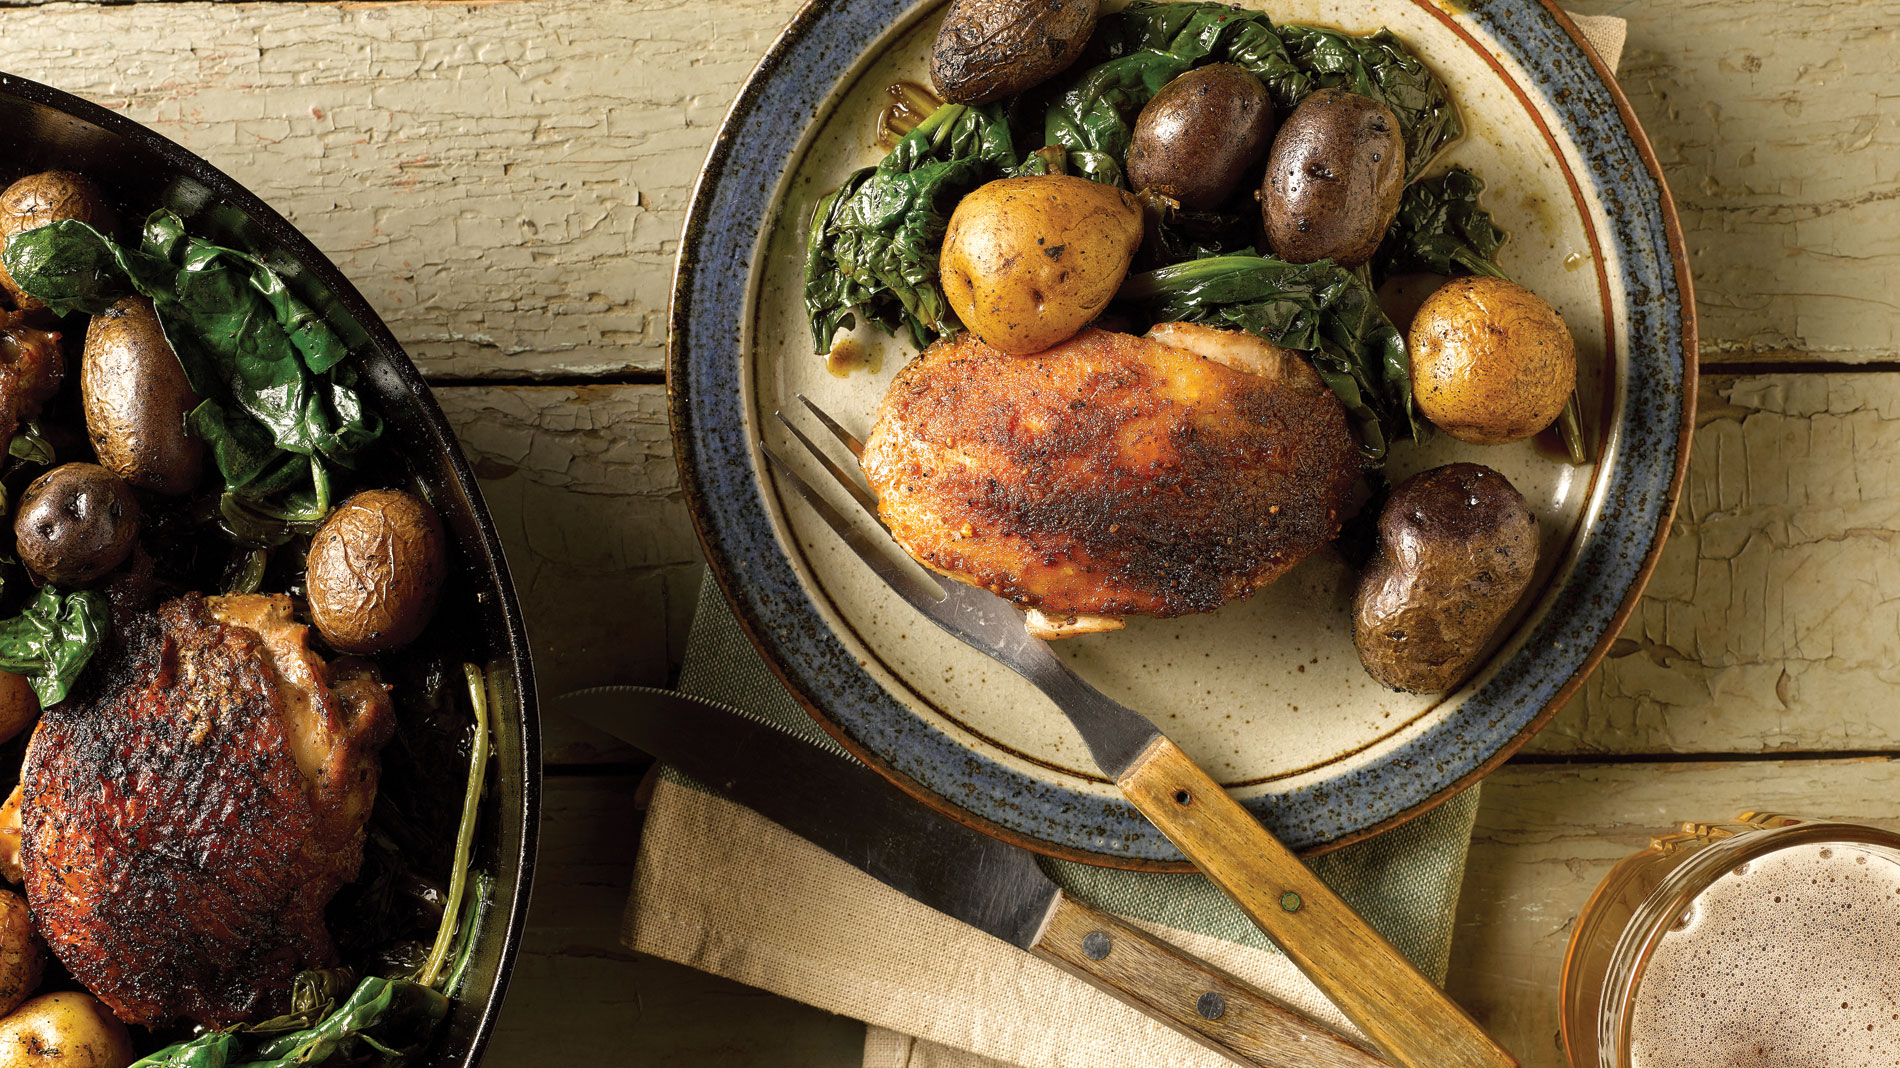 skillet with chicken thigh, potatoes and spinach